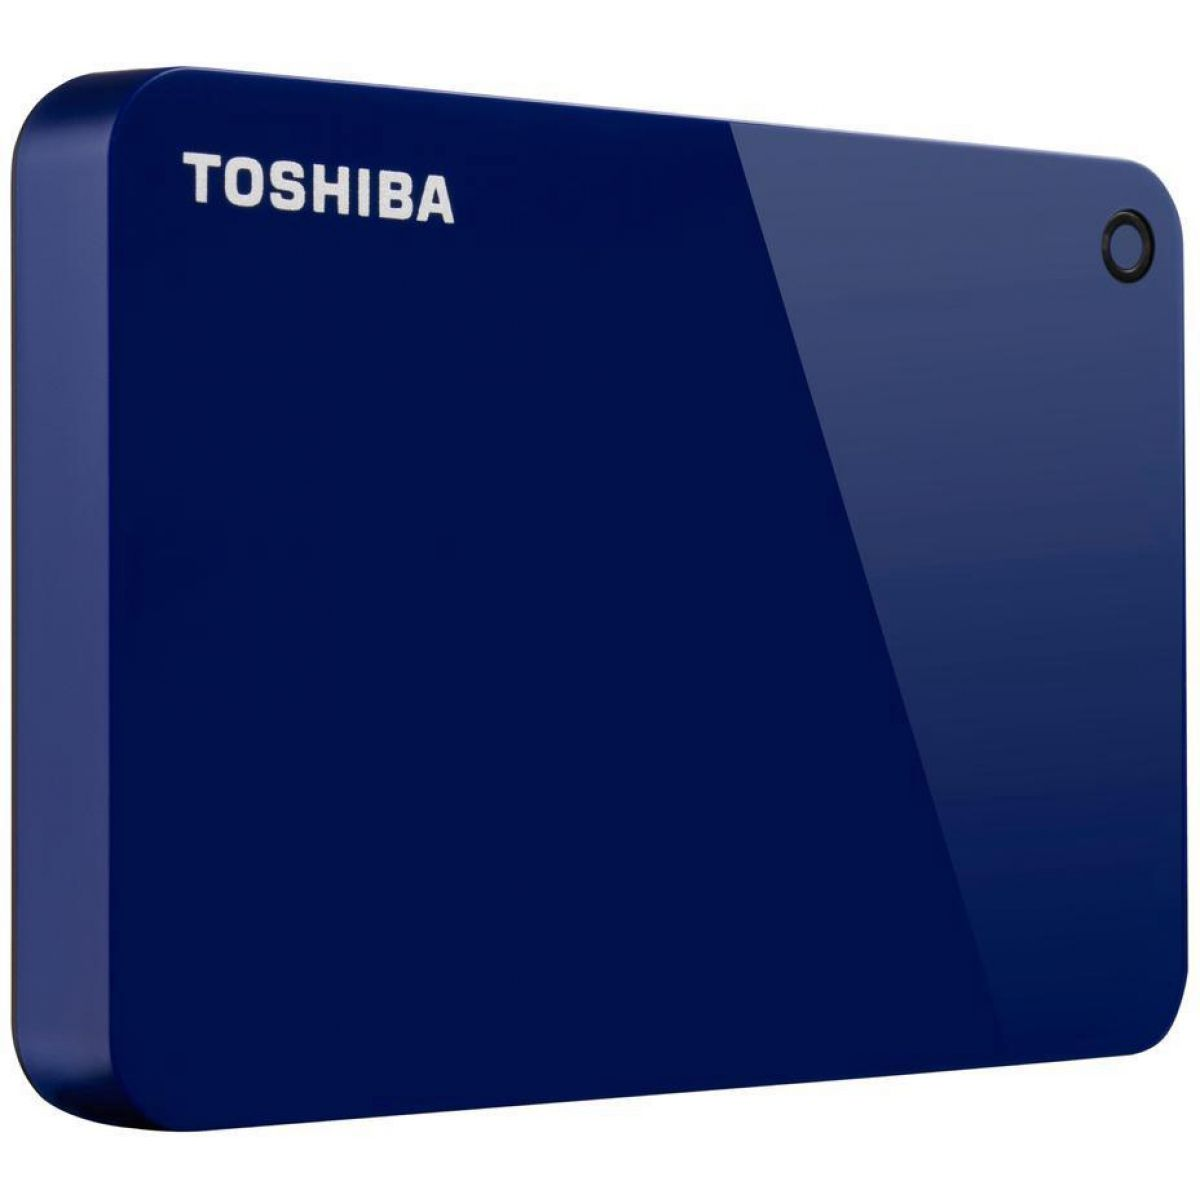 HD Externo Portatil Toshiba Canvio Advance 2TB AZUL - HDTC920XL3AA